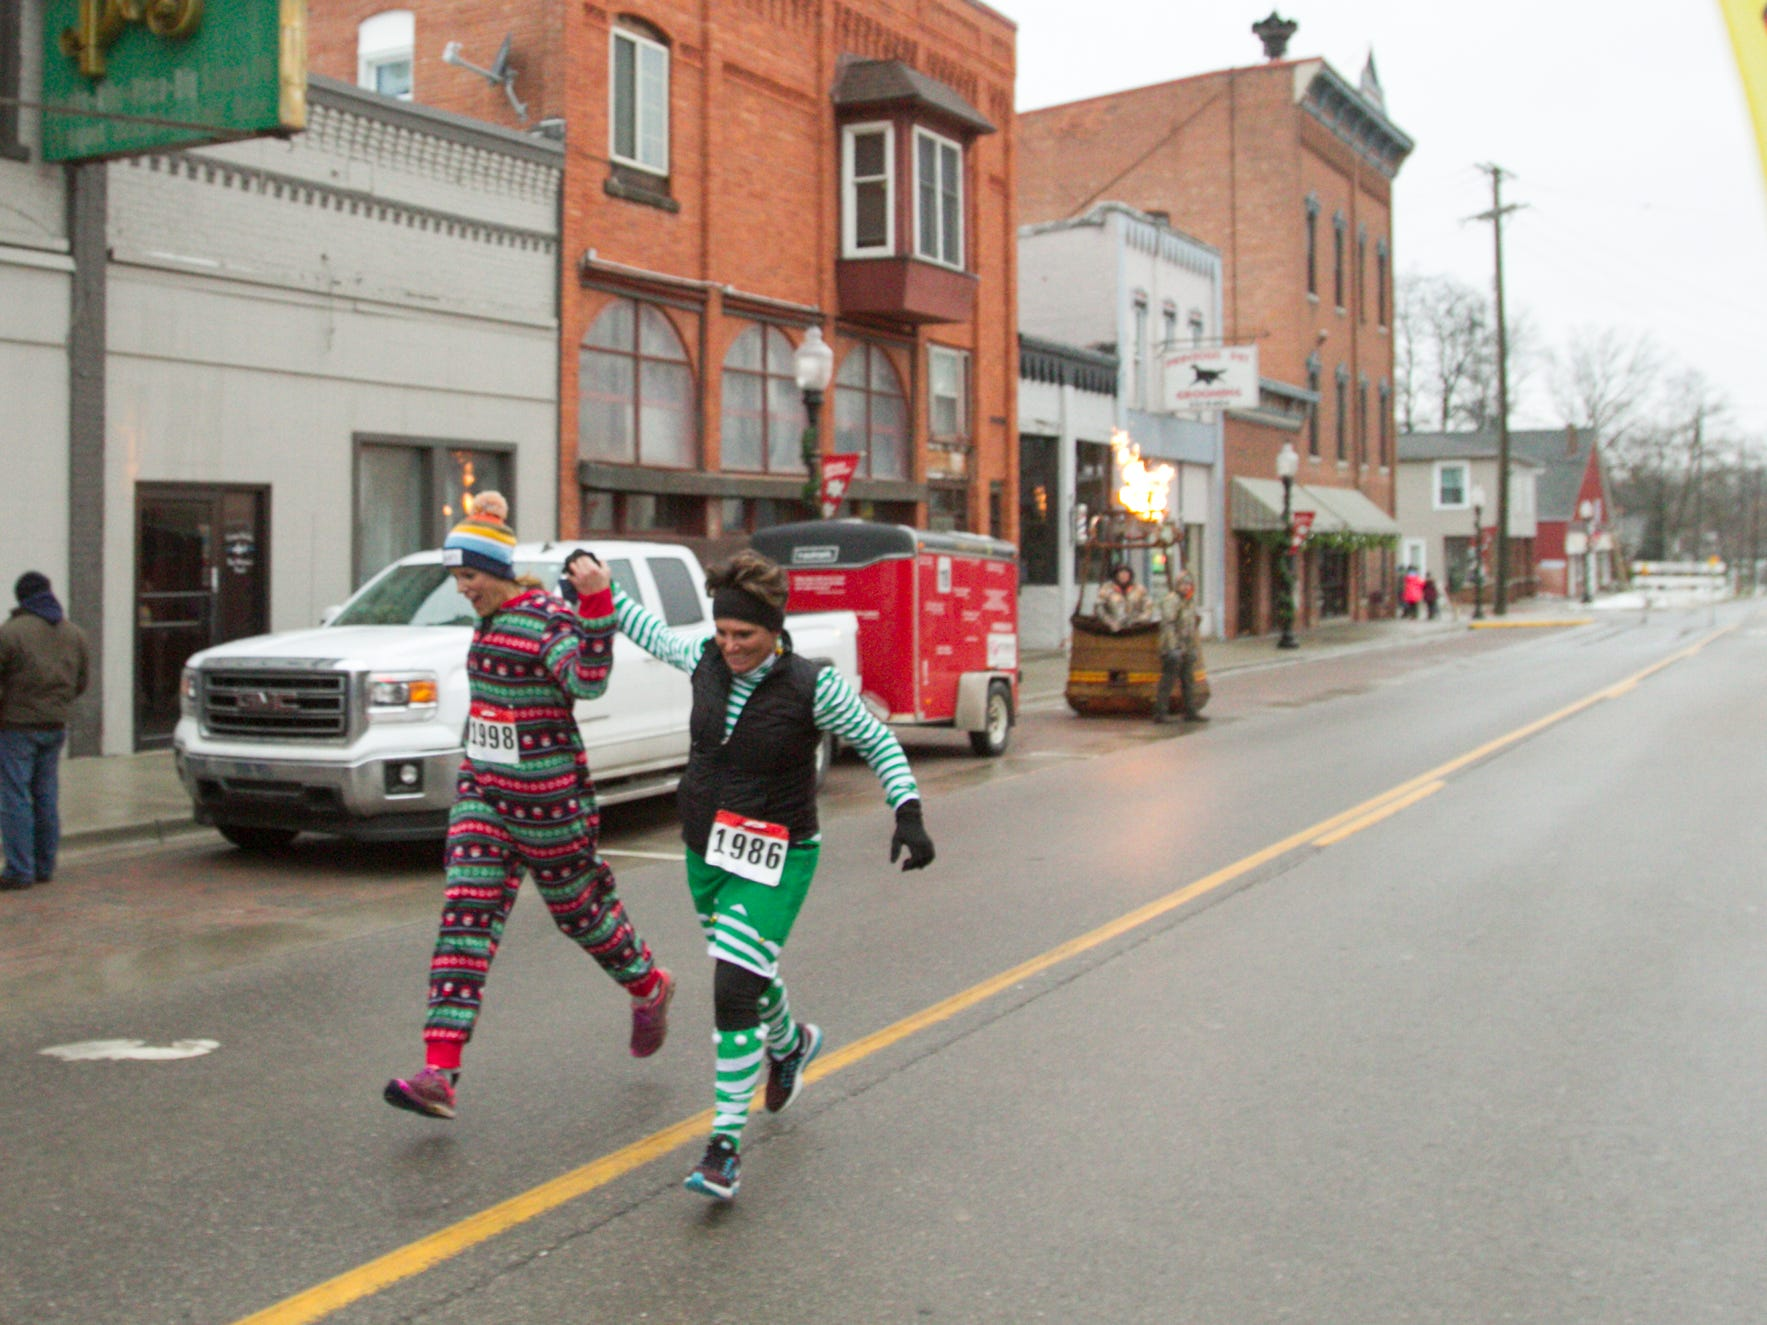 Jen Merritt of Rochester Hills, left, and Kelly Moran of Onaway, strangers at the start of the Dashing Through the Snow 5k, support one another through the finish line Saturday, Dec. 1, 2018 at Christmas in the 'Ville.